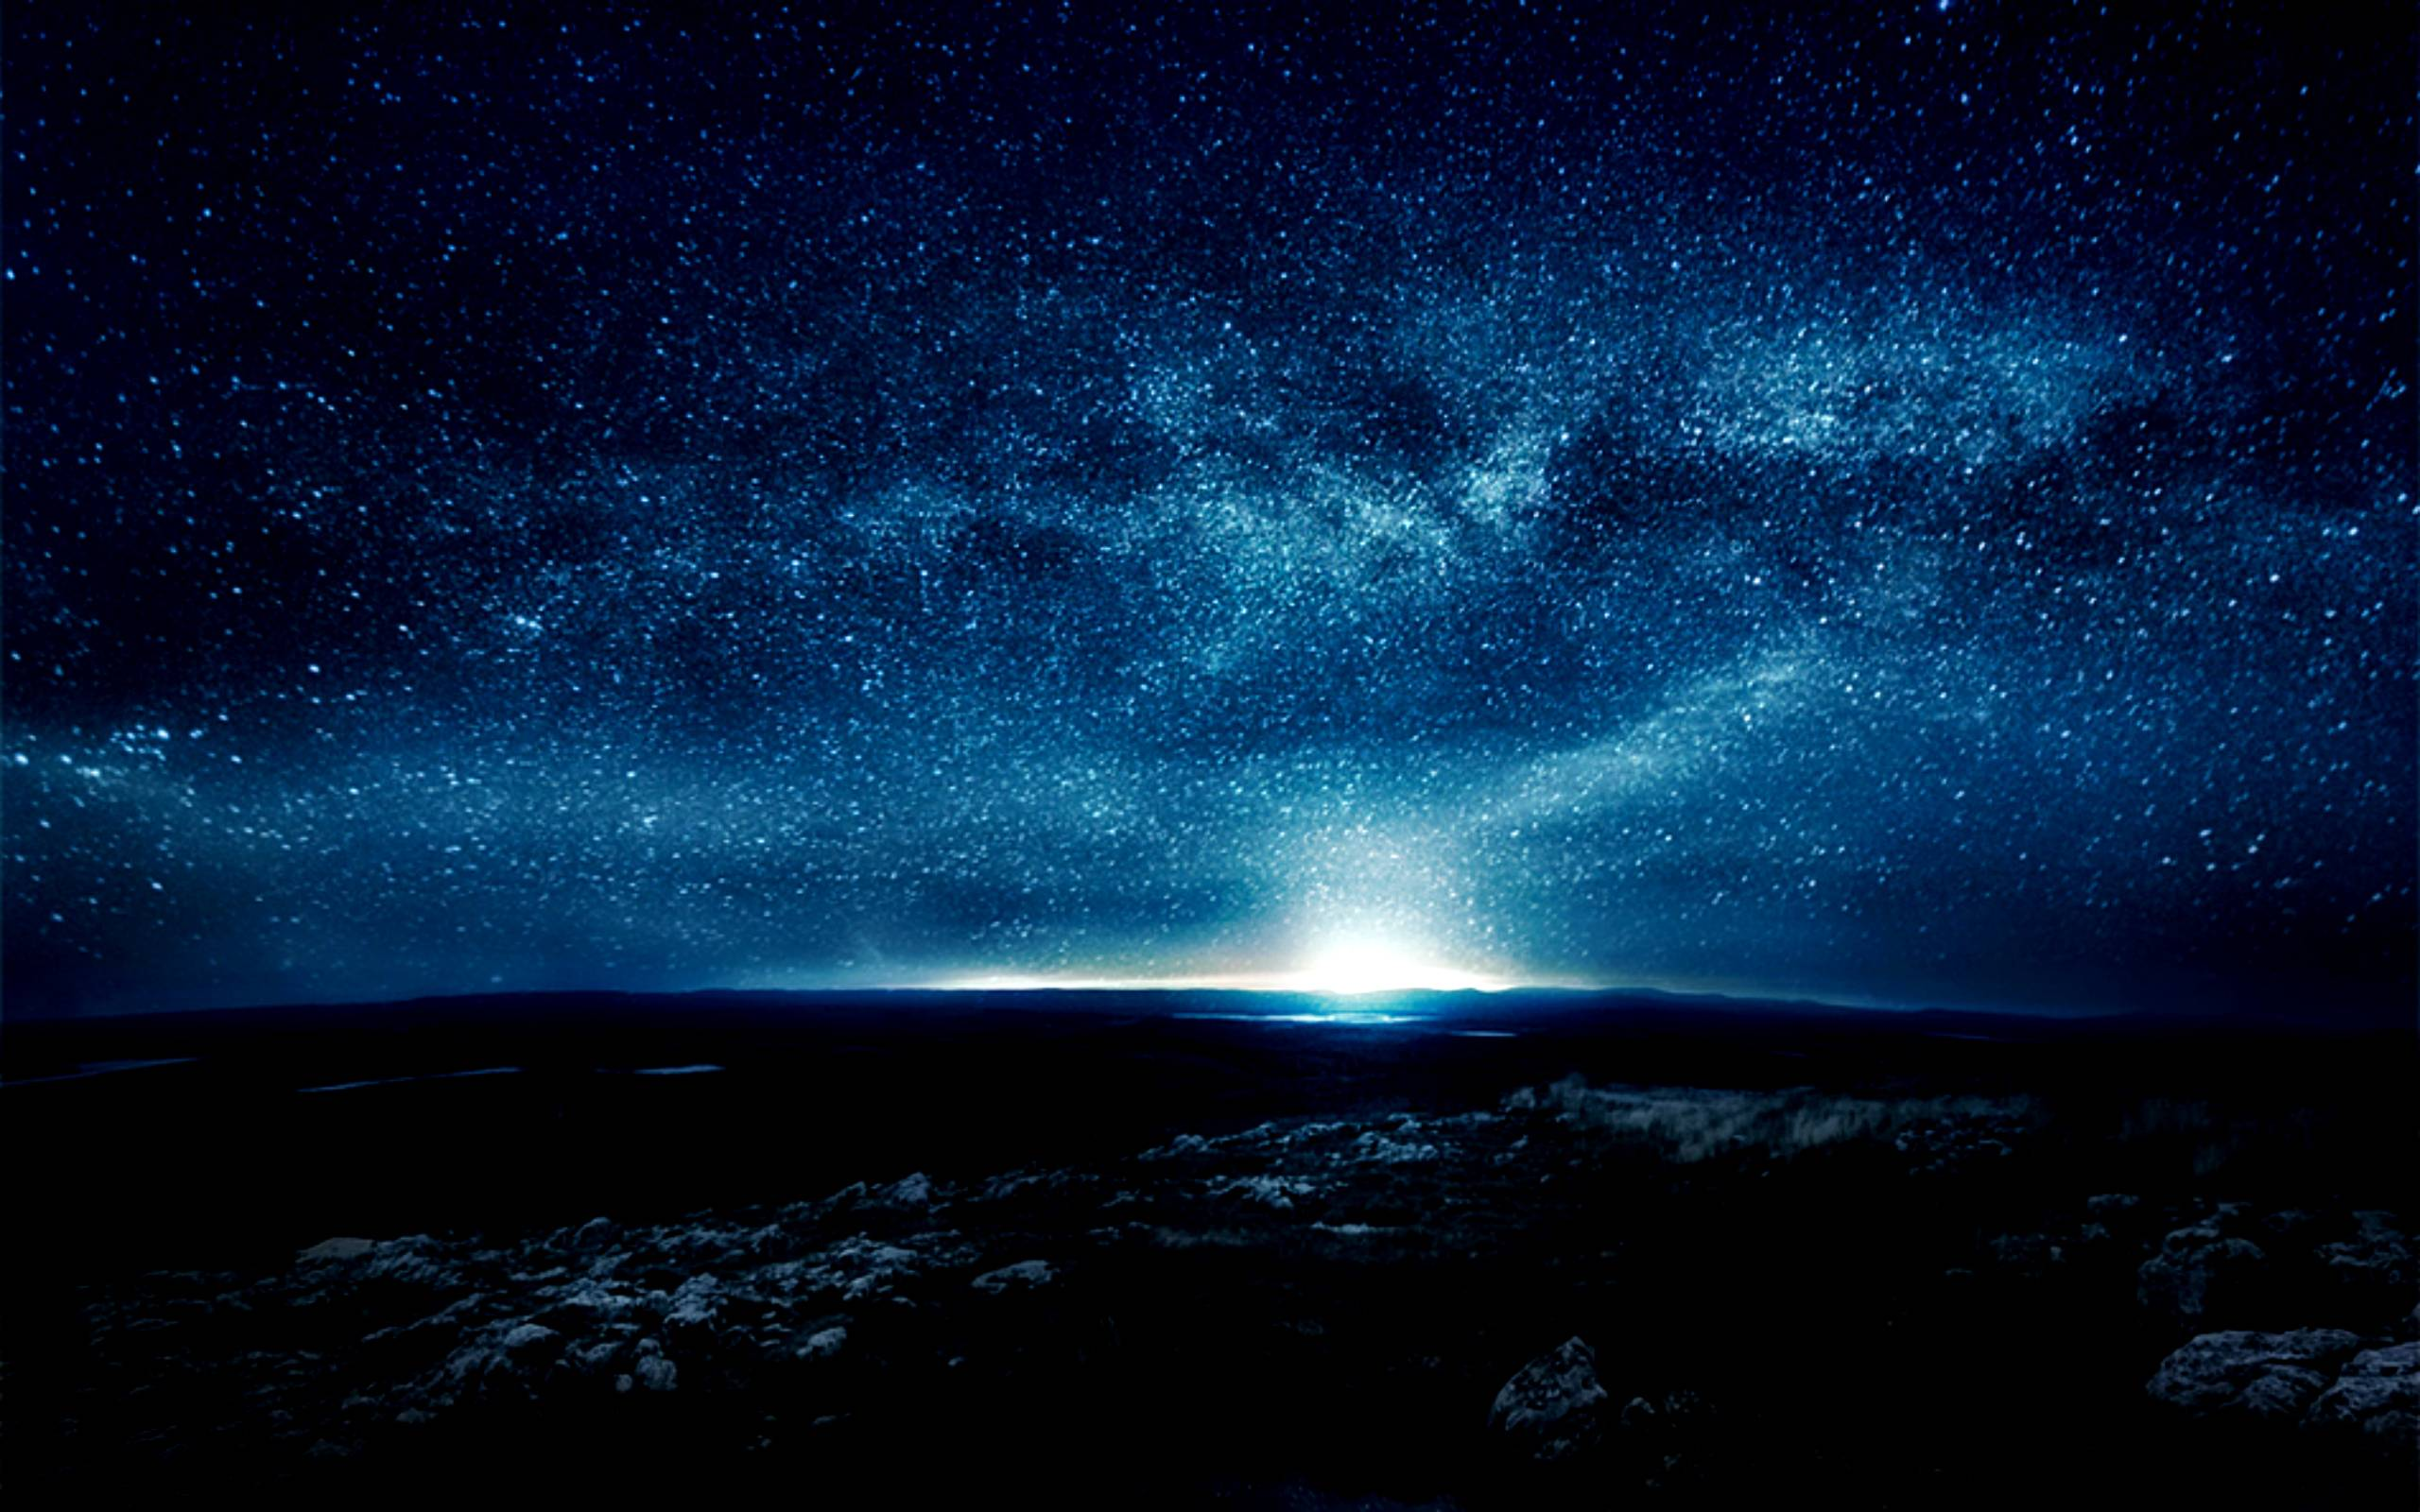 Starry Night Sky Wallpapers 2560x1600